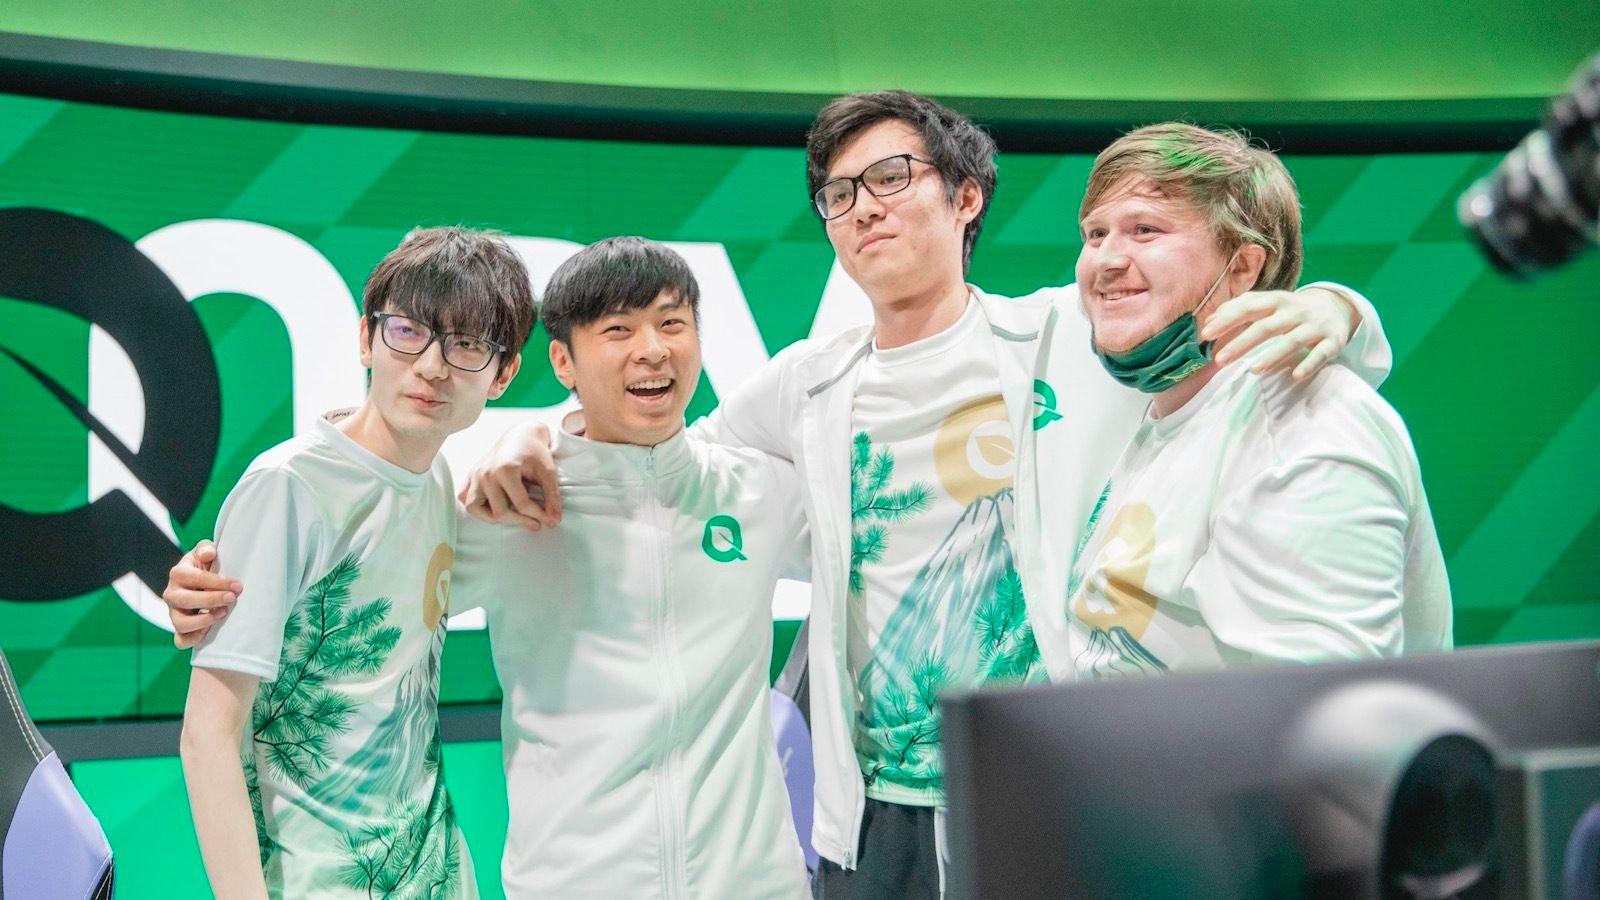 How FlyQuest's radical promotion of entire Academy roster to LCS paid off